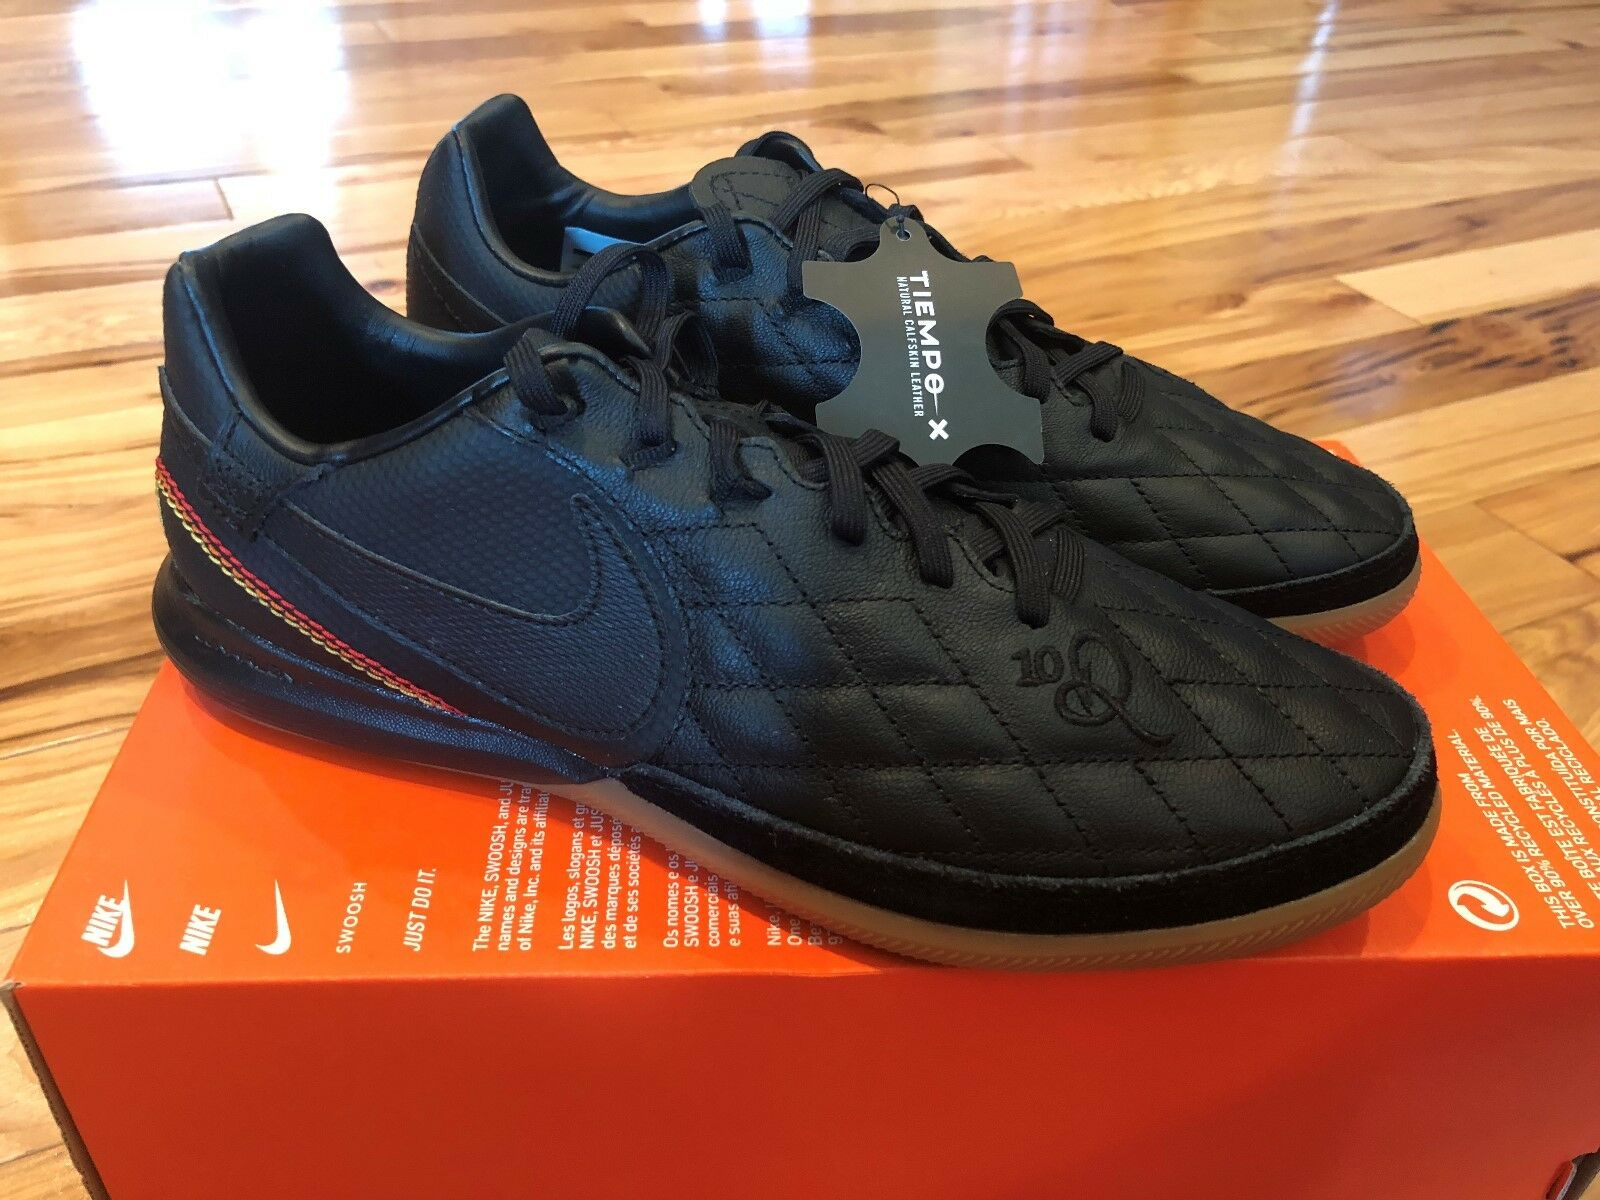 Nike TiempoX Finale Ronaldinho 10R IC Soocer Football Shoes AQ2201-007 Size 8